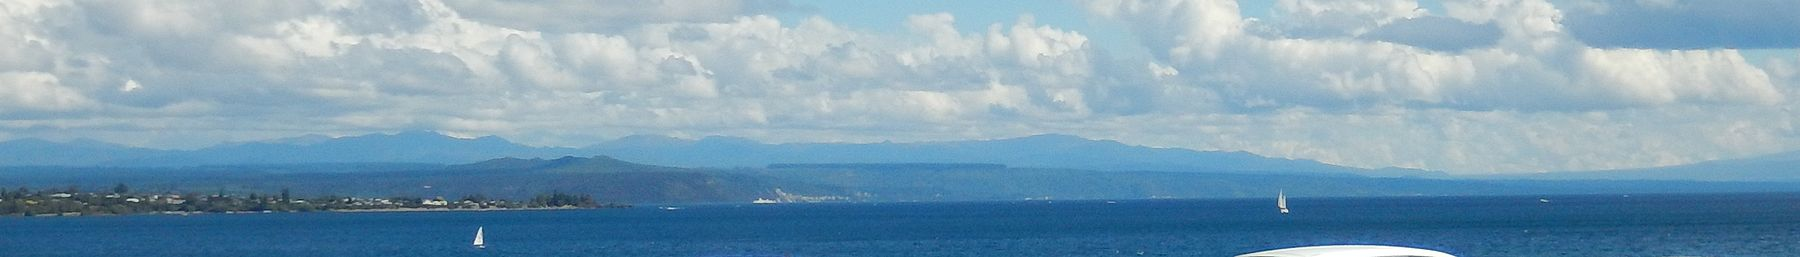 Lake Taupo from Ferry Road, near downtown Taupo